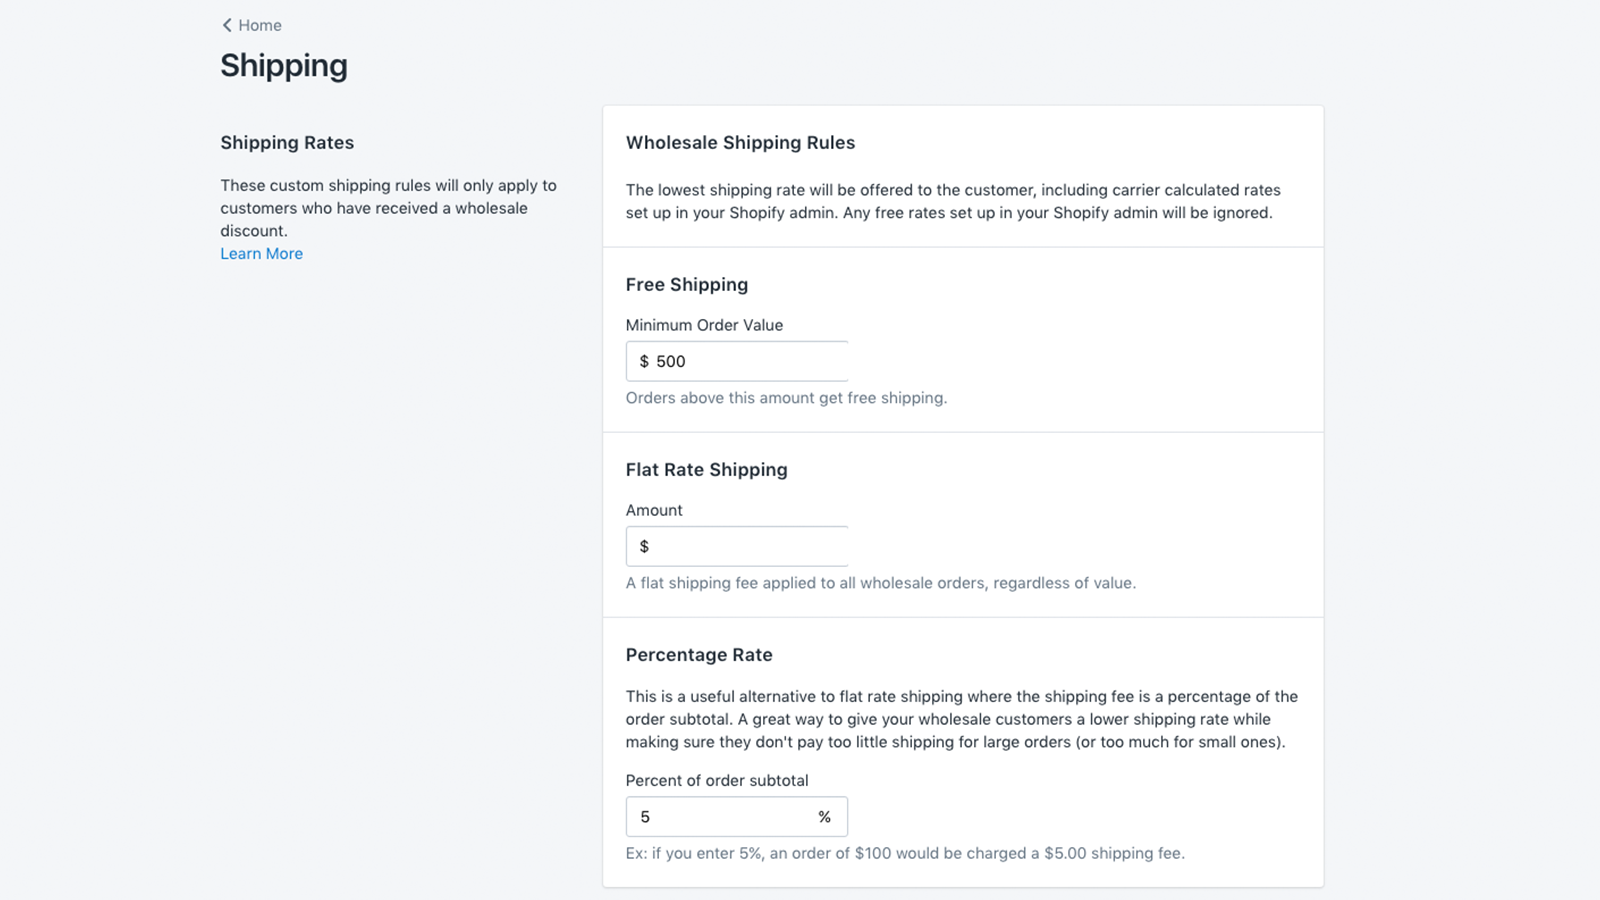 Highly customizable. - Say hello to custom shipping rules! Don't let the easy interface fool you, our app is packed with more features than any wholesale app on Shopify.